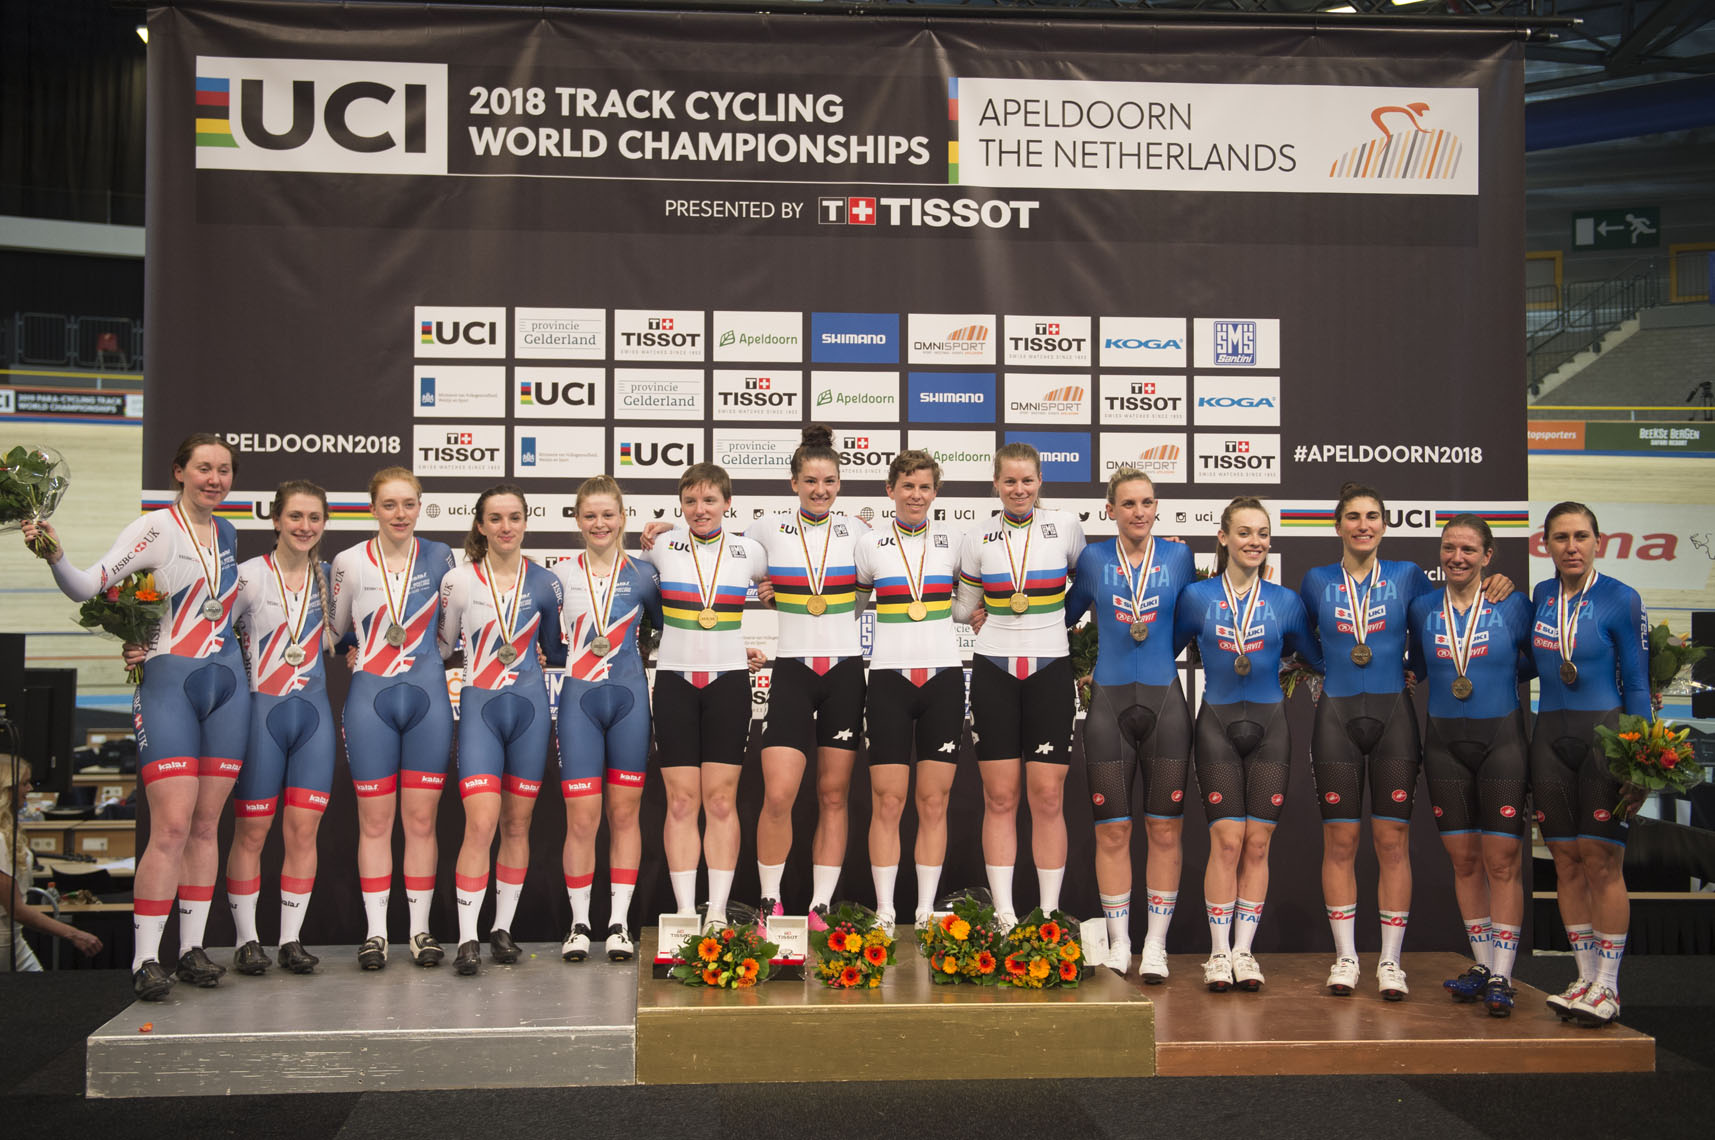 UCI Track Cycling World Championships, 2018